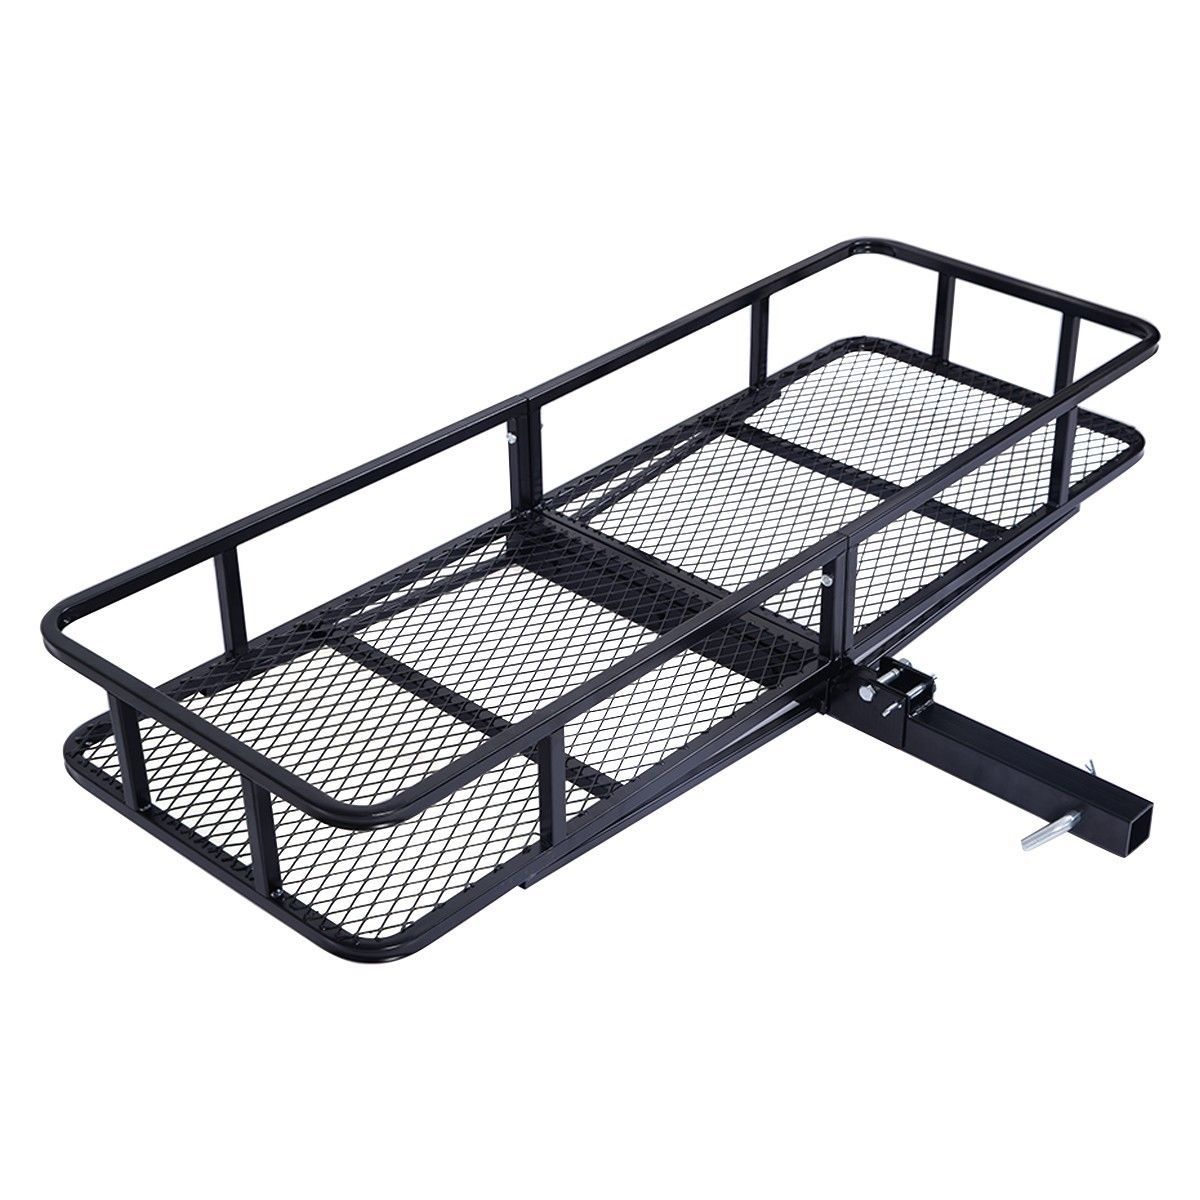 Trailer Hitch Luggage Rack Folding Cargo Carrier Luggage Rack Hauler Truck Or Car Hitch 2